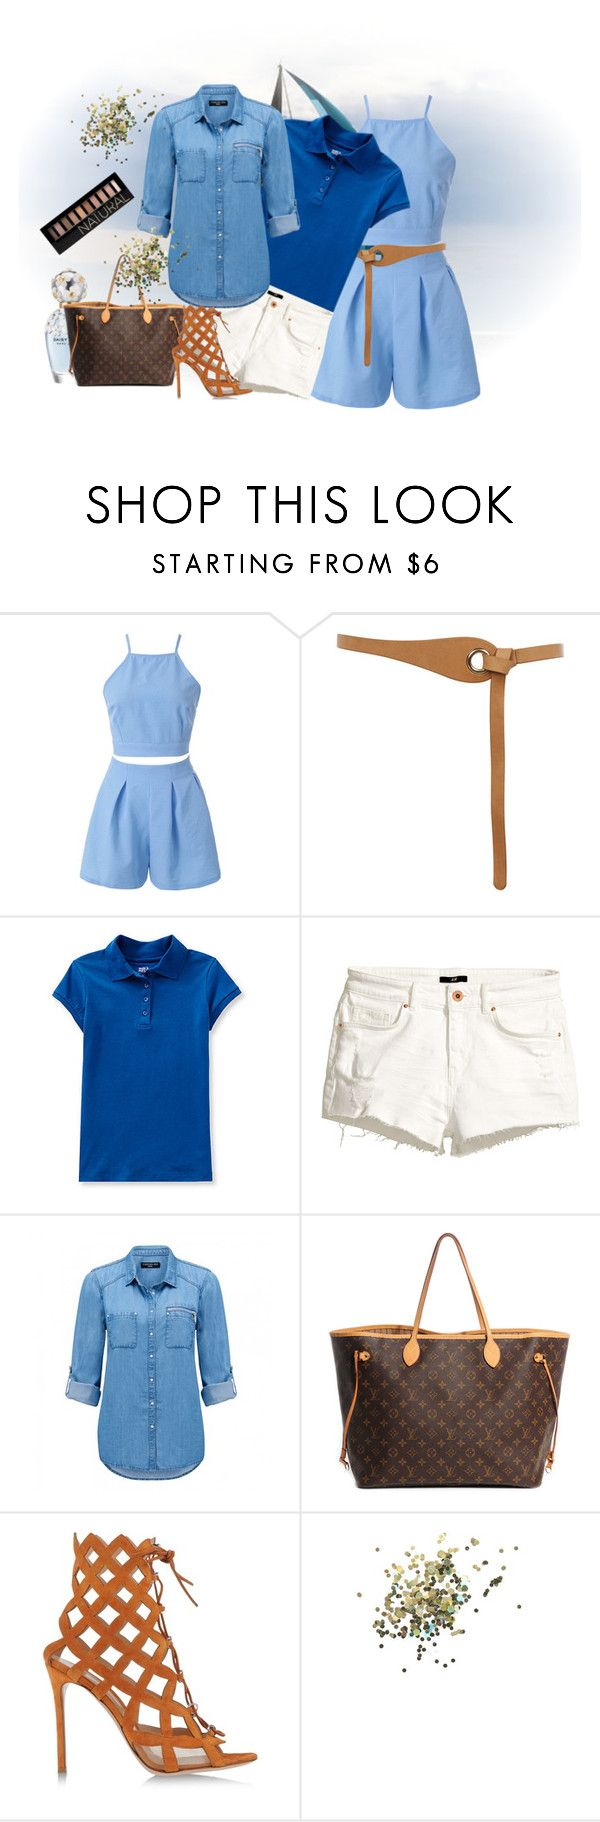 """""""Blue"""" by armband ❤ liked on Polyvore featuring Warehouse, H&M, Marc Jacobs, Forever New, Louis Vuitton, Gianvito Rossi, Topshop and Forever 21"""